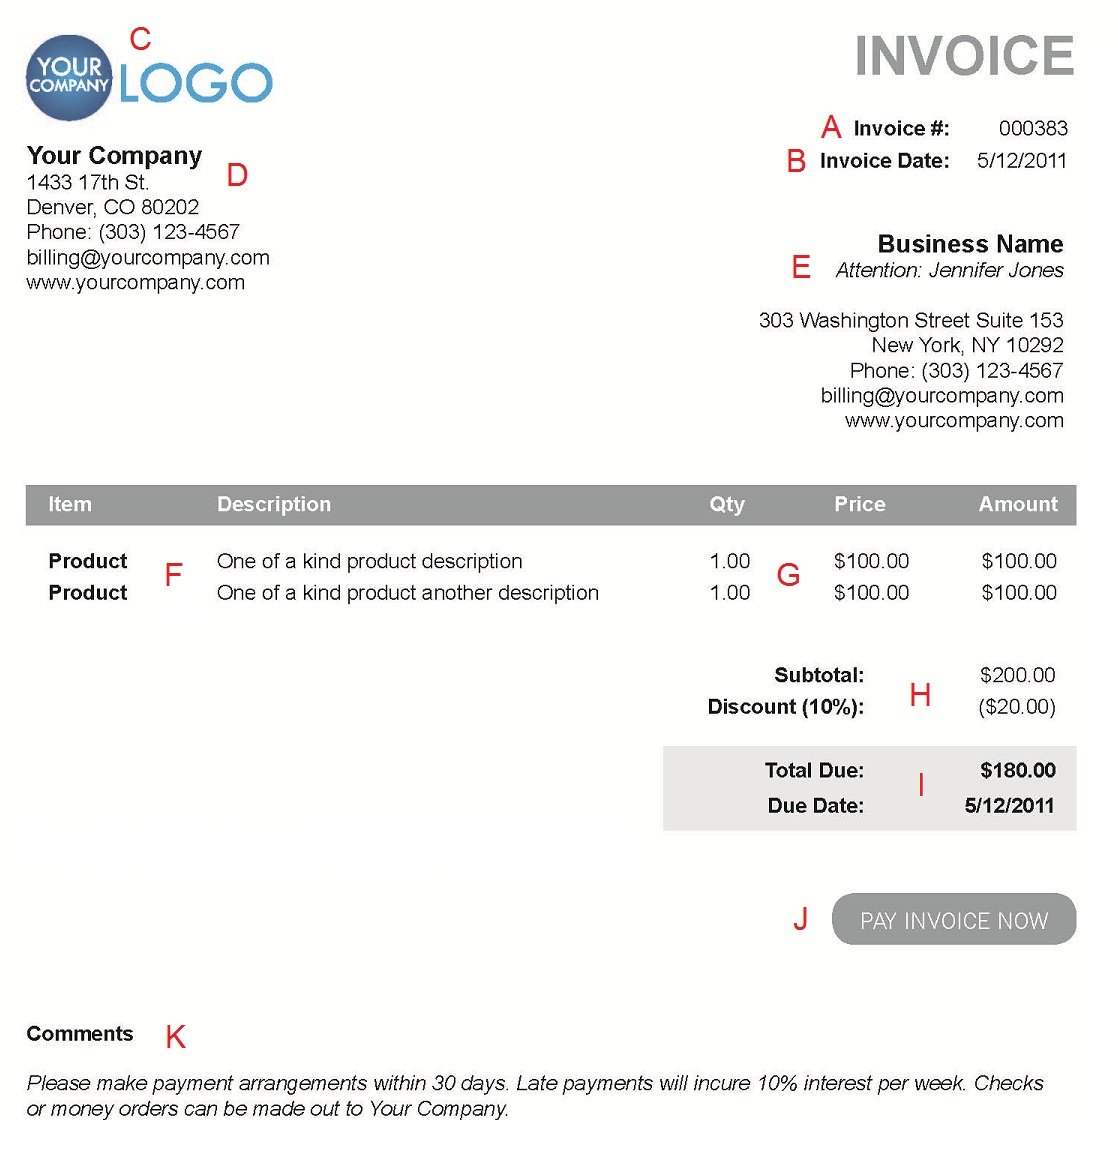 Coolmathgamesus  Unique The  Different Sections Of An Electronic Payment Invoice With Inspiring A  With Cute Fedex Invoices Also Blank Invoice Paper In Addition Medical Invoice Template Word And Ford Explorer Invoice Price As Well As Free Printable Invoices Templates Additionally Free Invoicing Software For Small Business From Paysimplecom With Coolmathgamesus  Inspiring The  Different Sections Of An Electronic Payment Invoice With Cute A  And Unique Fedex Invoices Also Blank Invoice Paper In Addition Medical Invoice Template Word From Paysimplecom